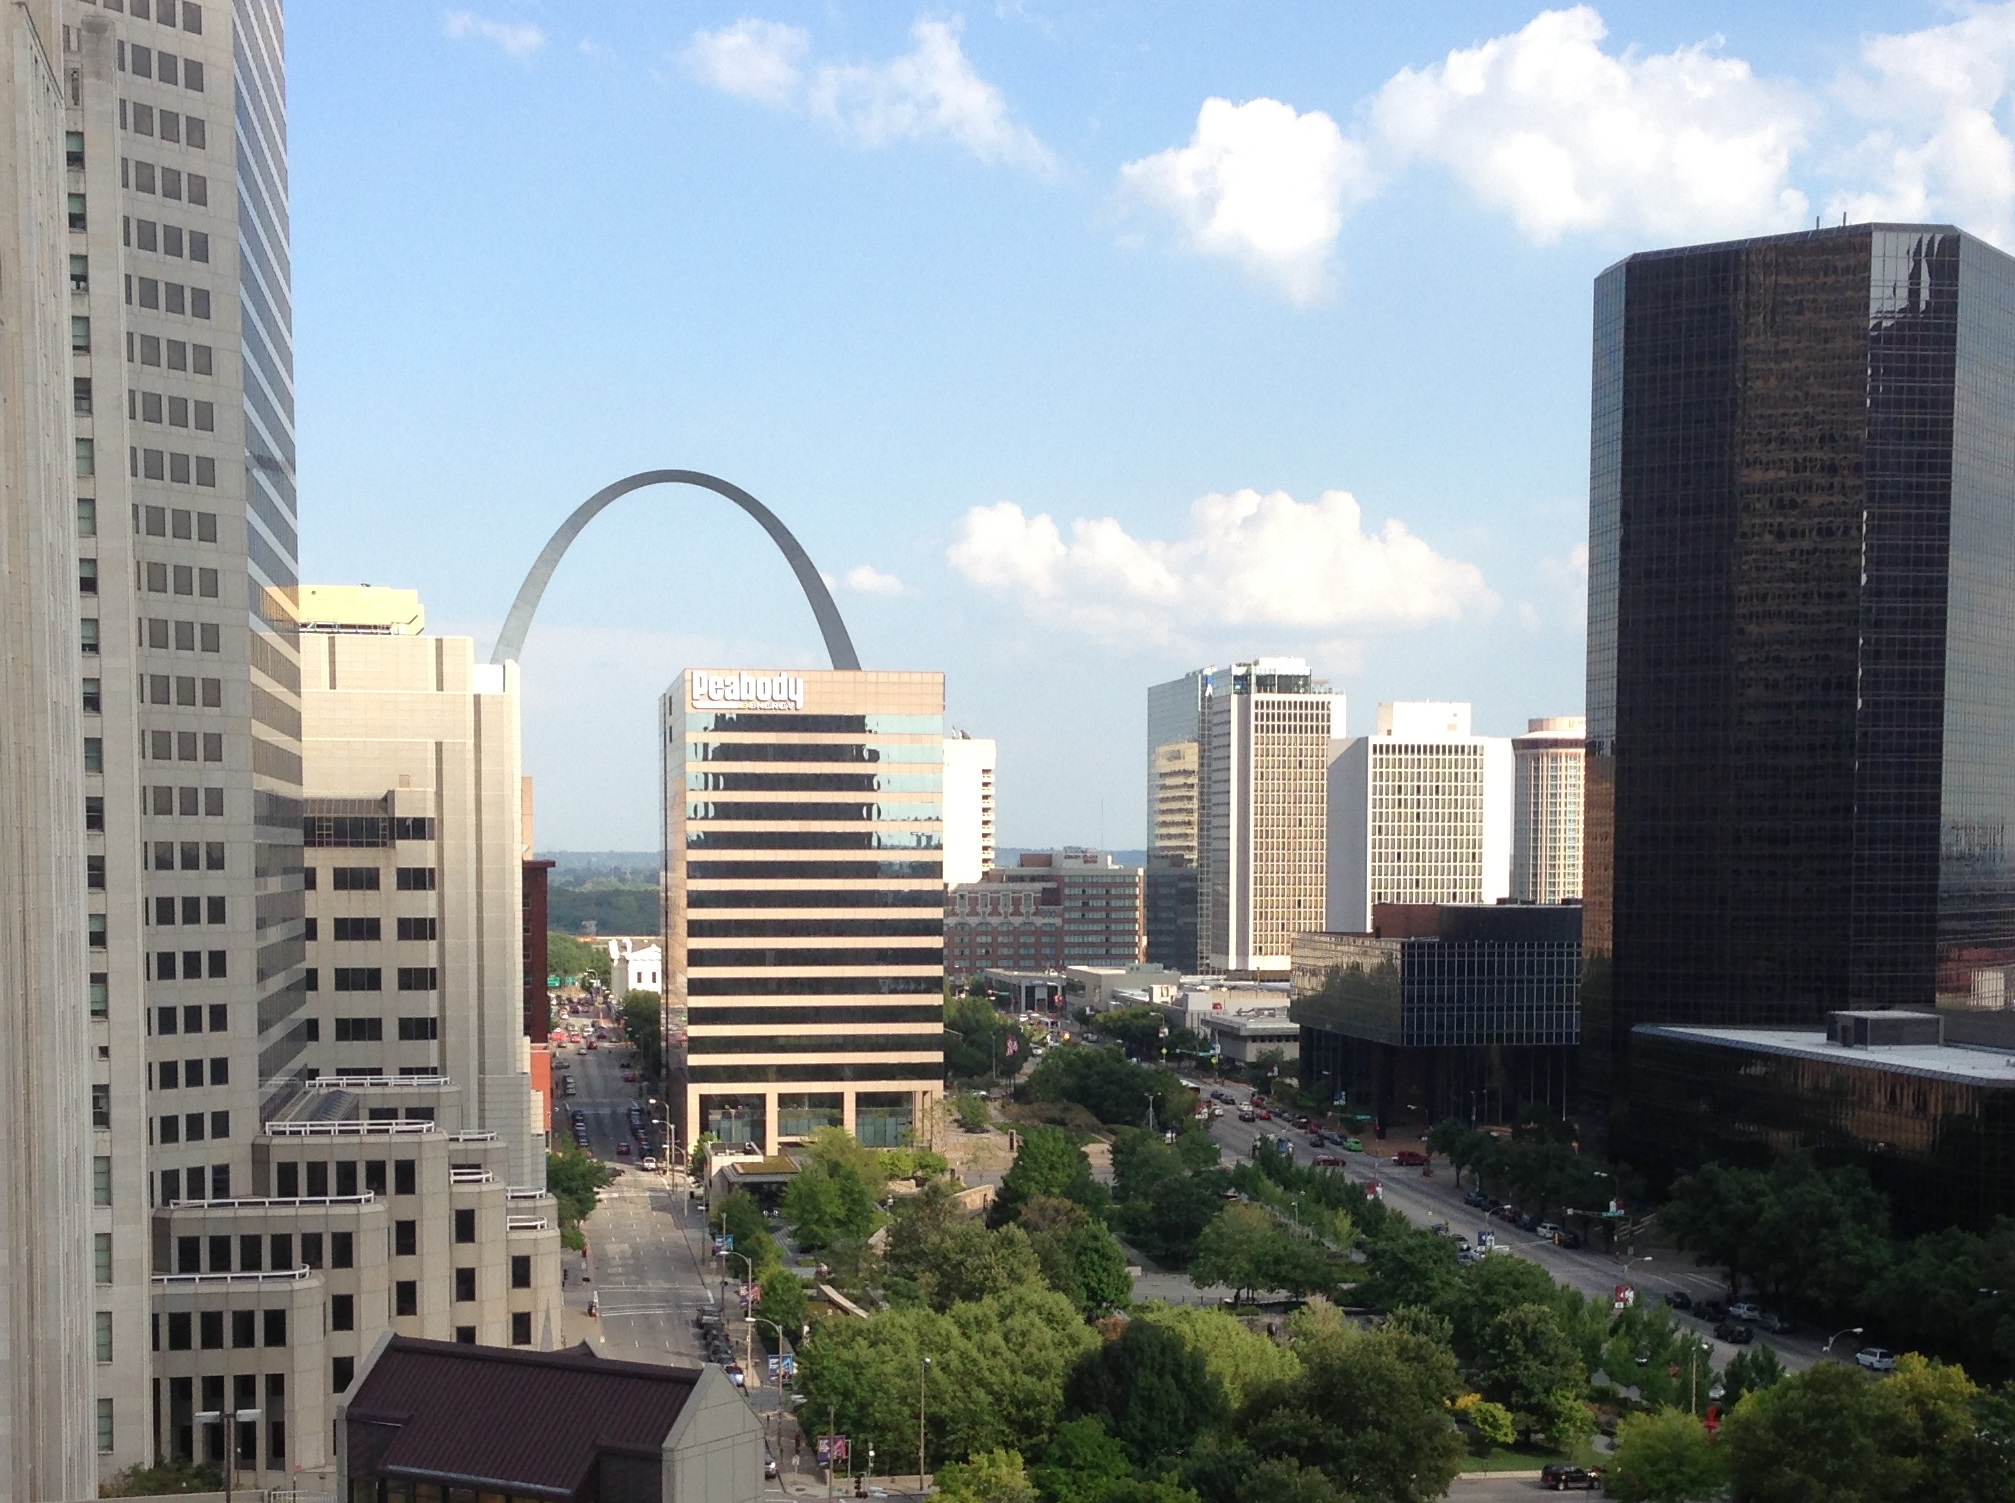 View of the arch from Saint Louis University School of Law's Scott Hall, a 25x20 Participant.